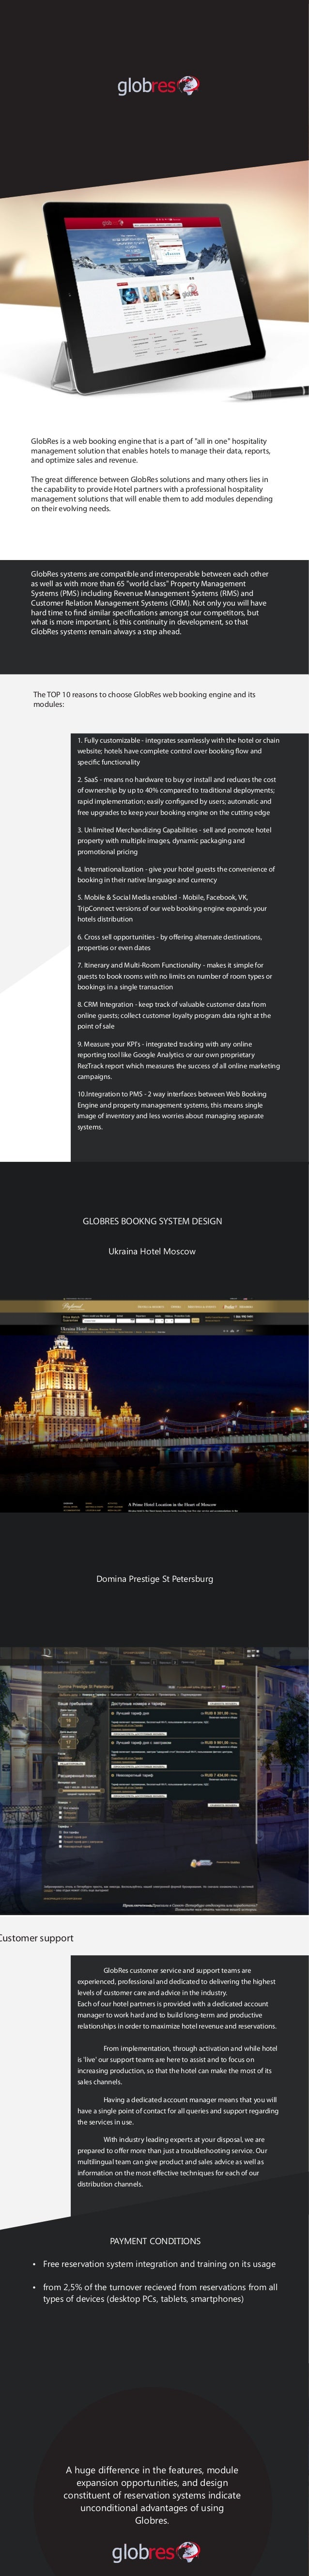 """GlobRes is a web booking engine that is a part of """"all in one"""" hospitality  management solution that enables hotels to man..."""